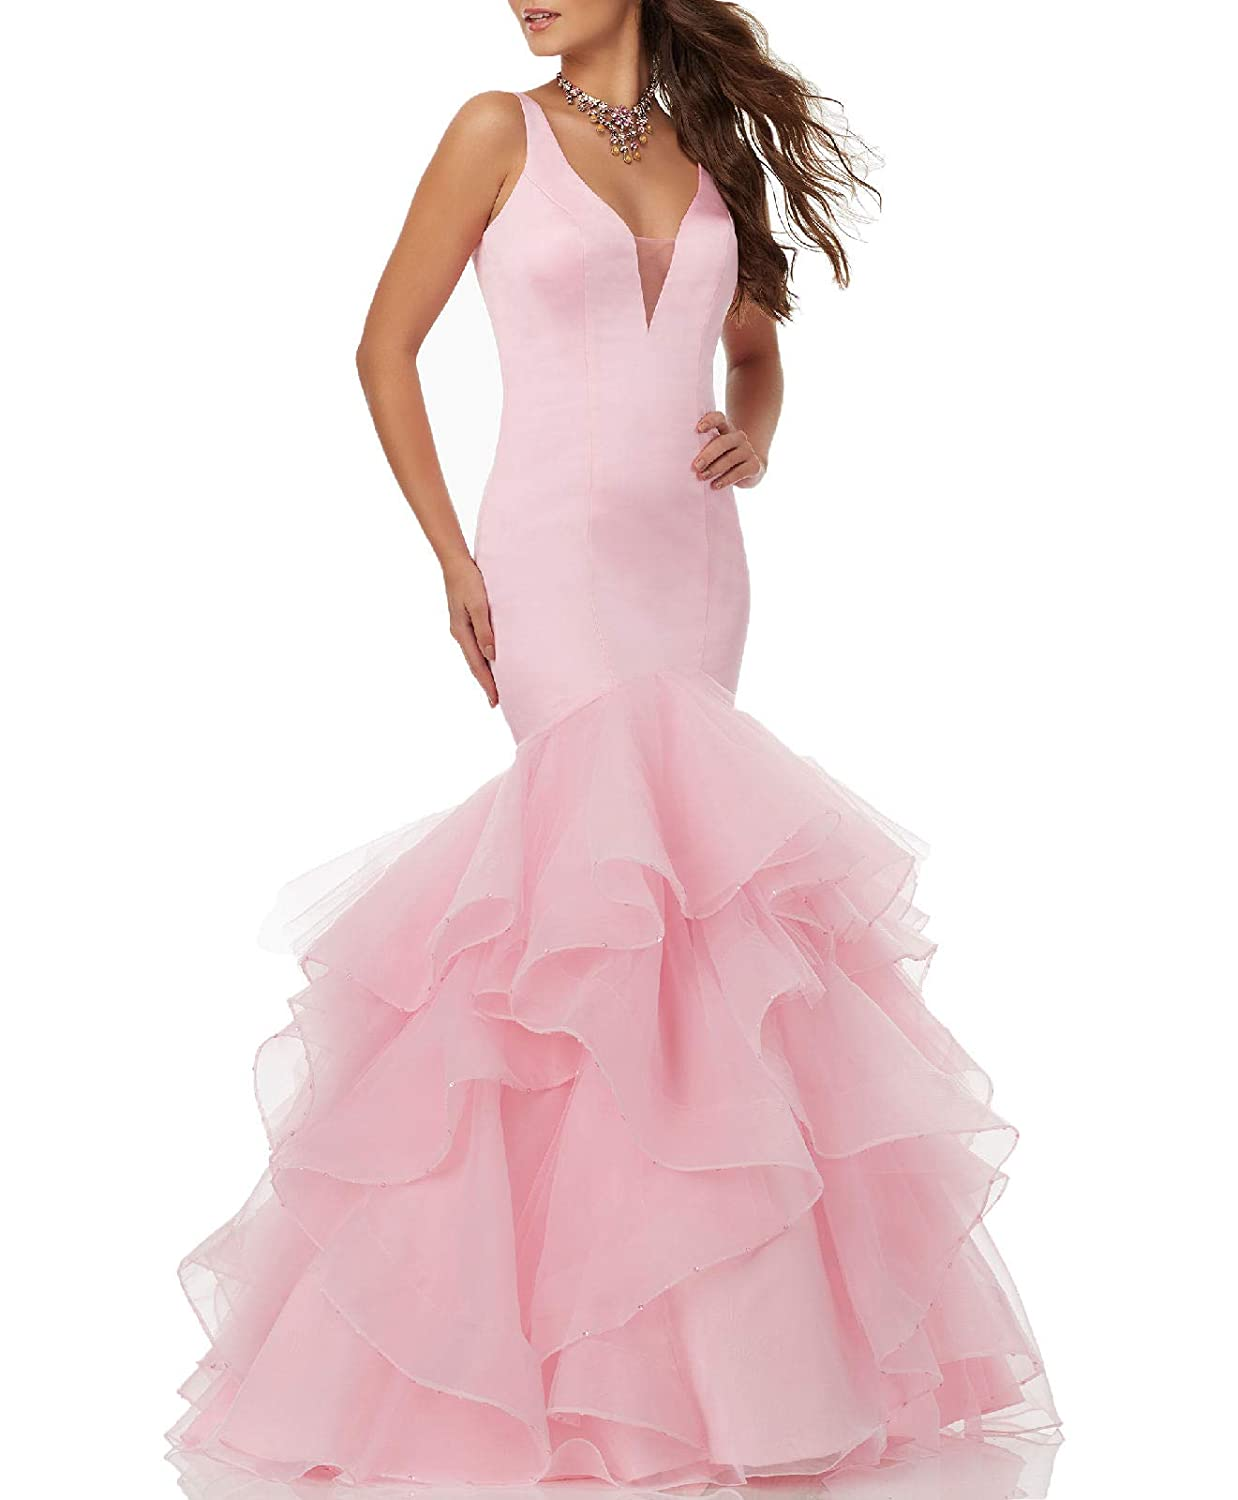 Pink Wanshaqin Women's VNeck StackUp Organza Ruffles Wedding Dresses Open Back for Bride Plus Size